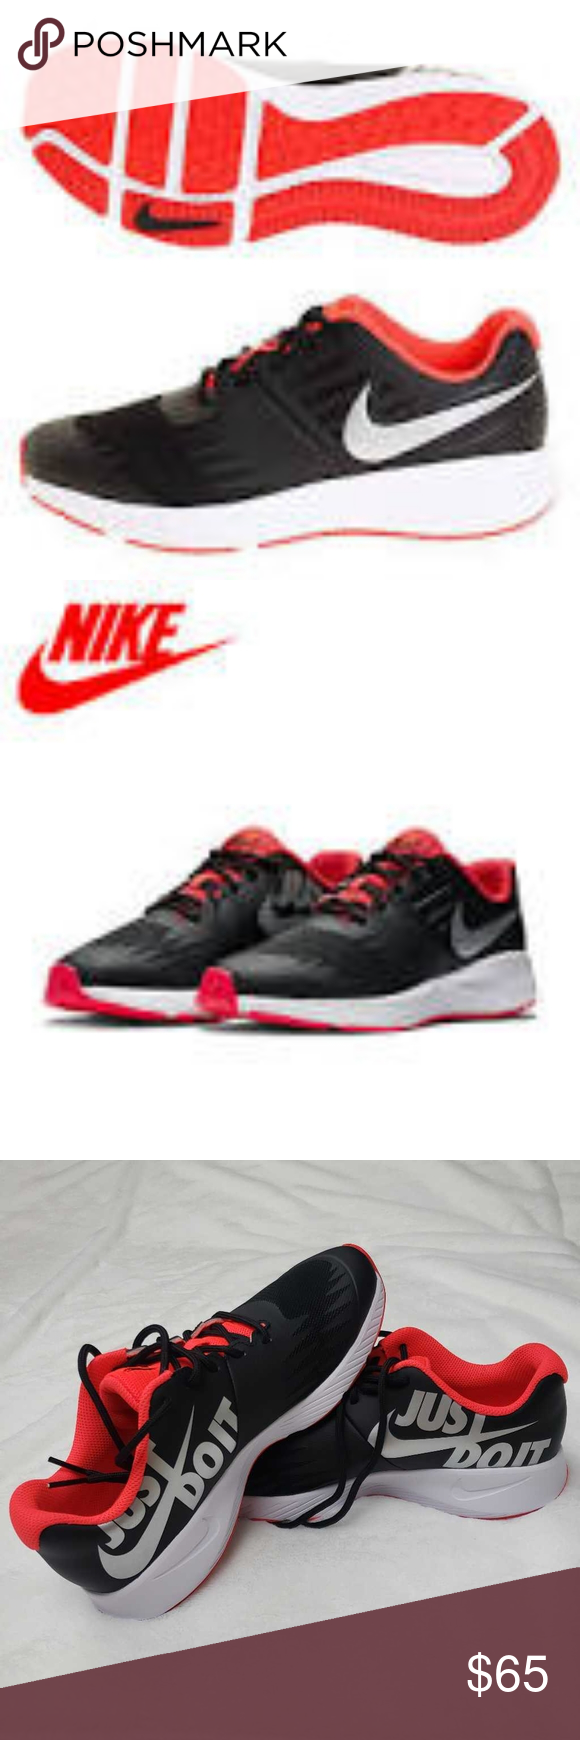 Nike Boys Running Shoes Black JUST DO IT Low Top L in 2020